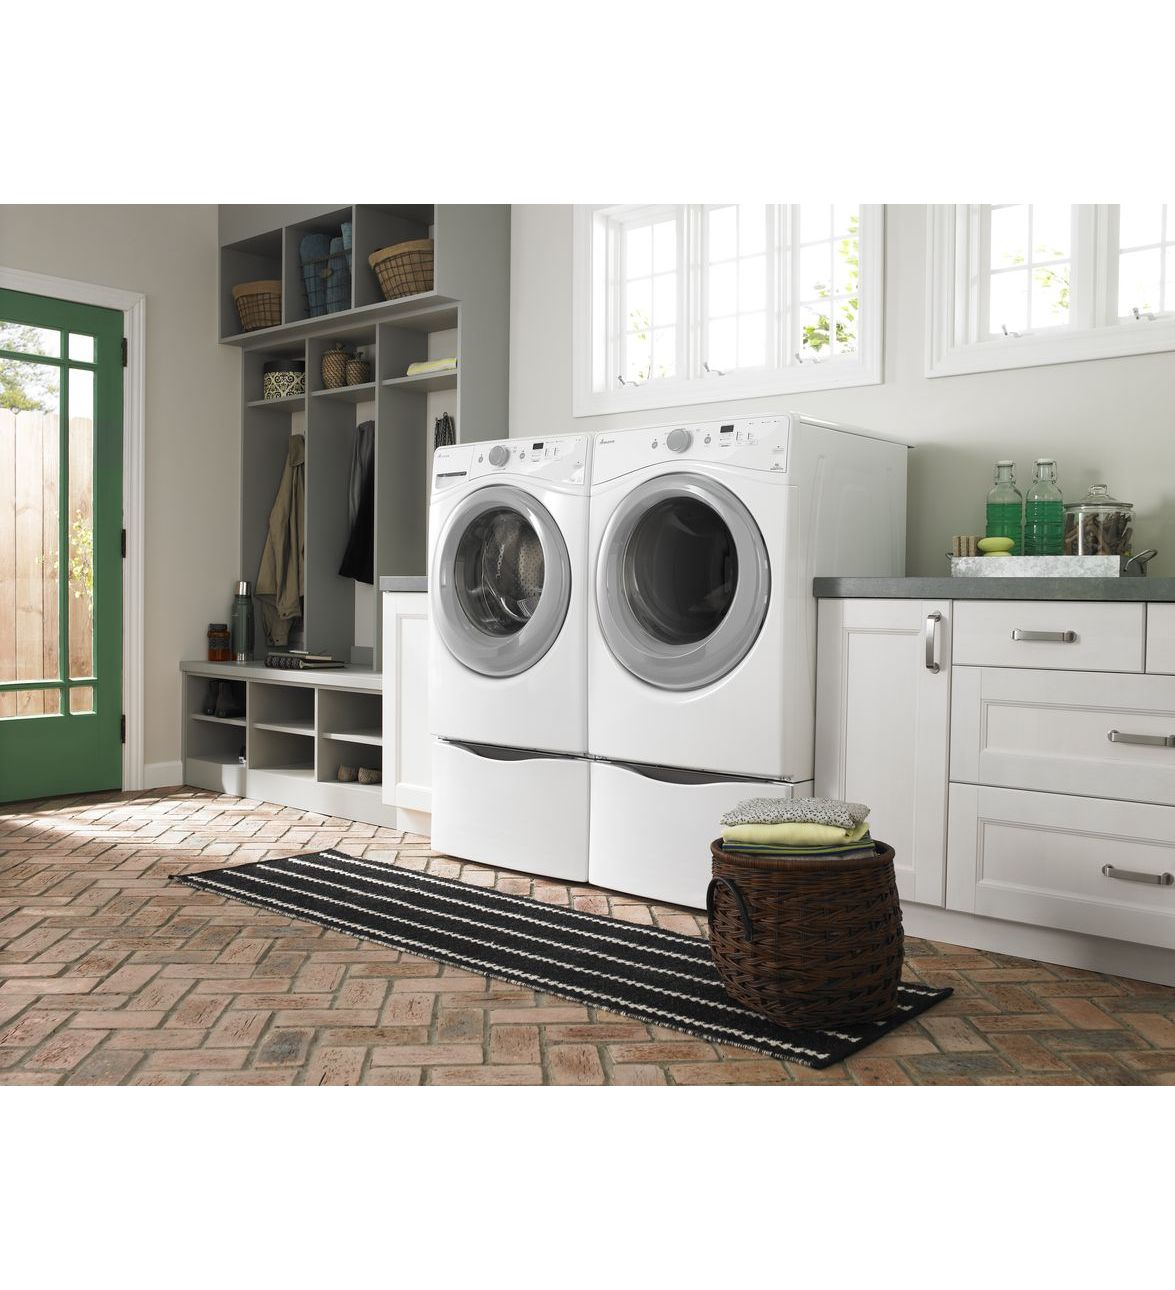 Nfw5800dw Amana 174 4 8 Cu Ft I E C Energy Star